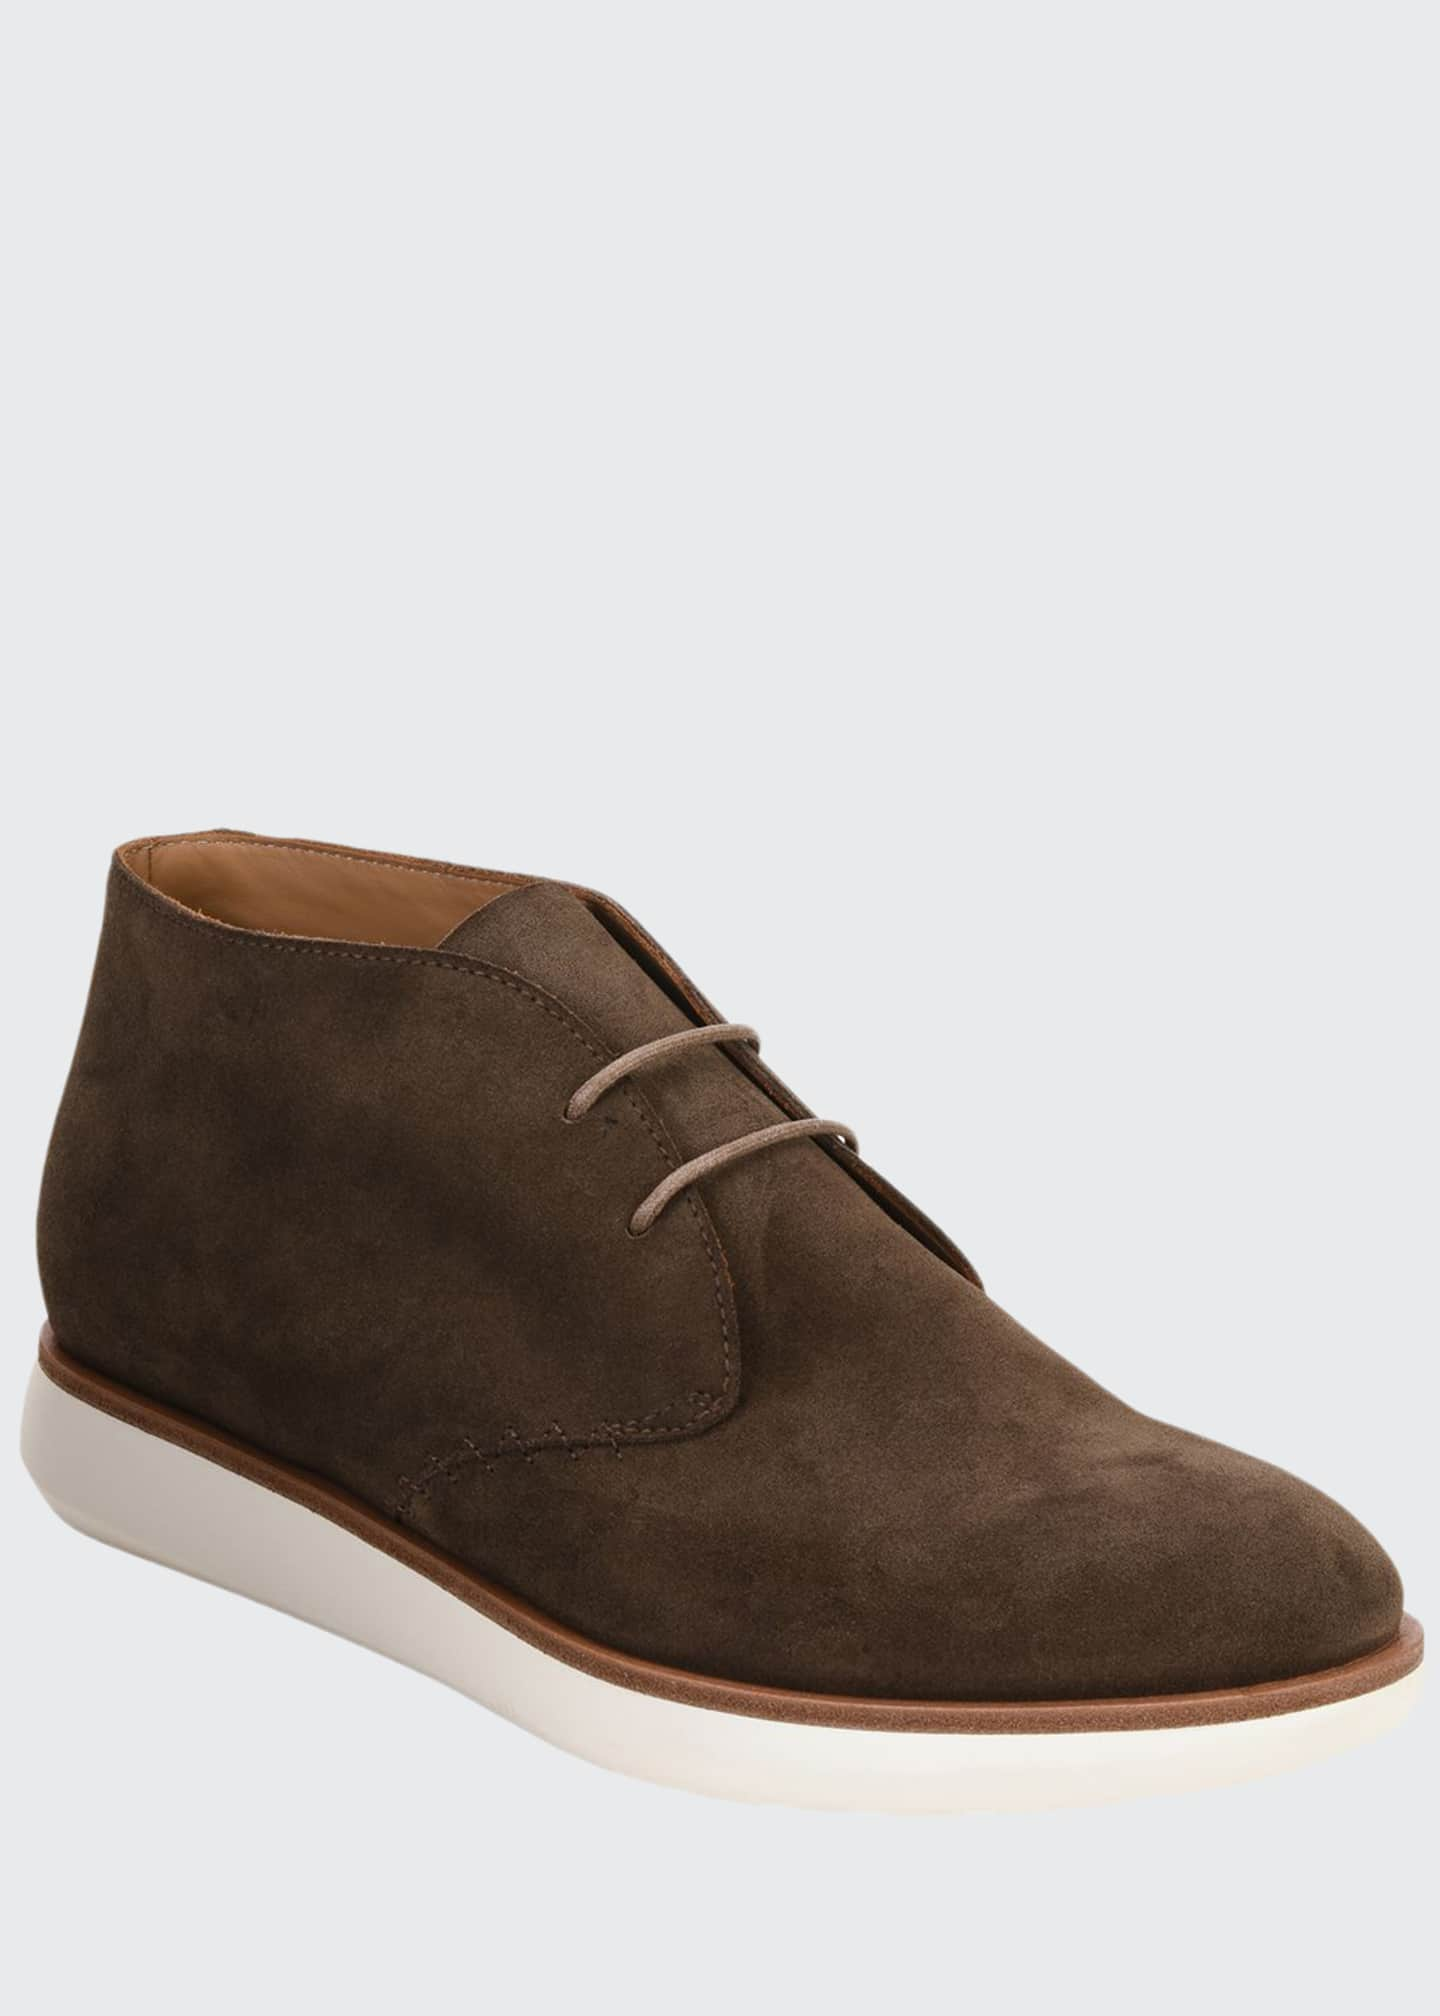 Image 1 of 4: Men's Lightweight Suede Chukka Boots